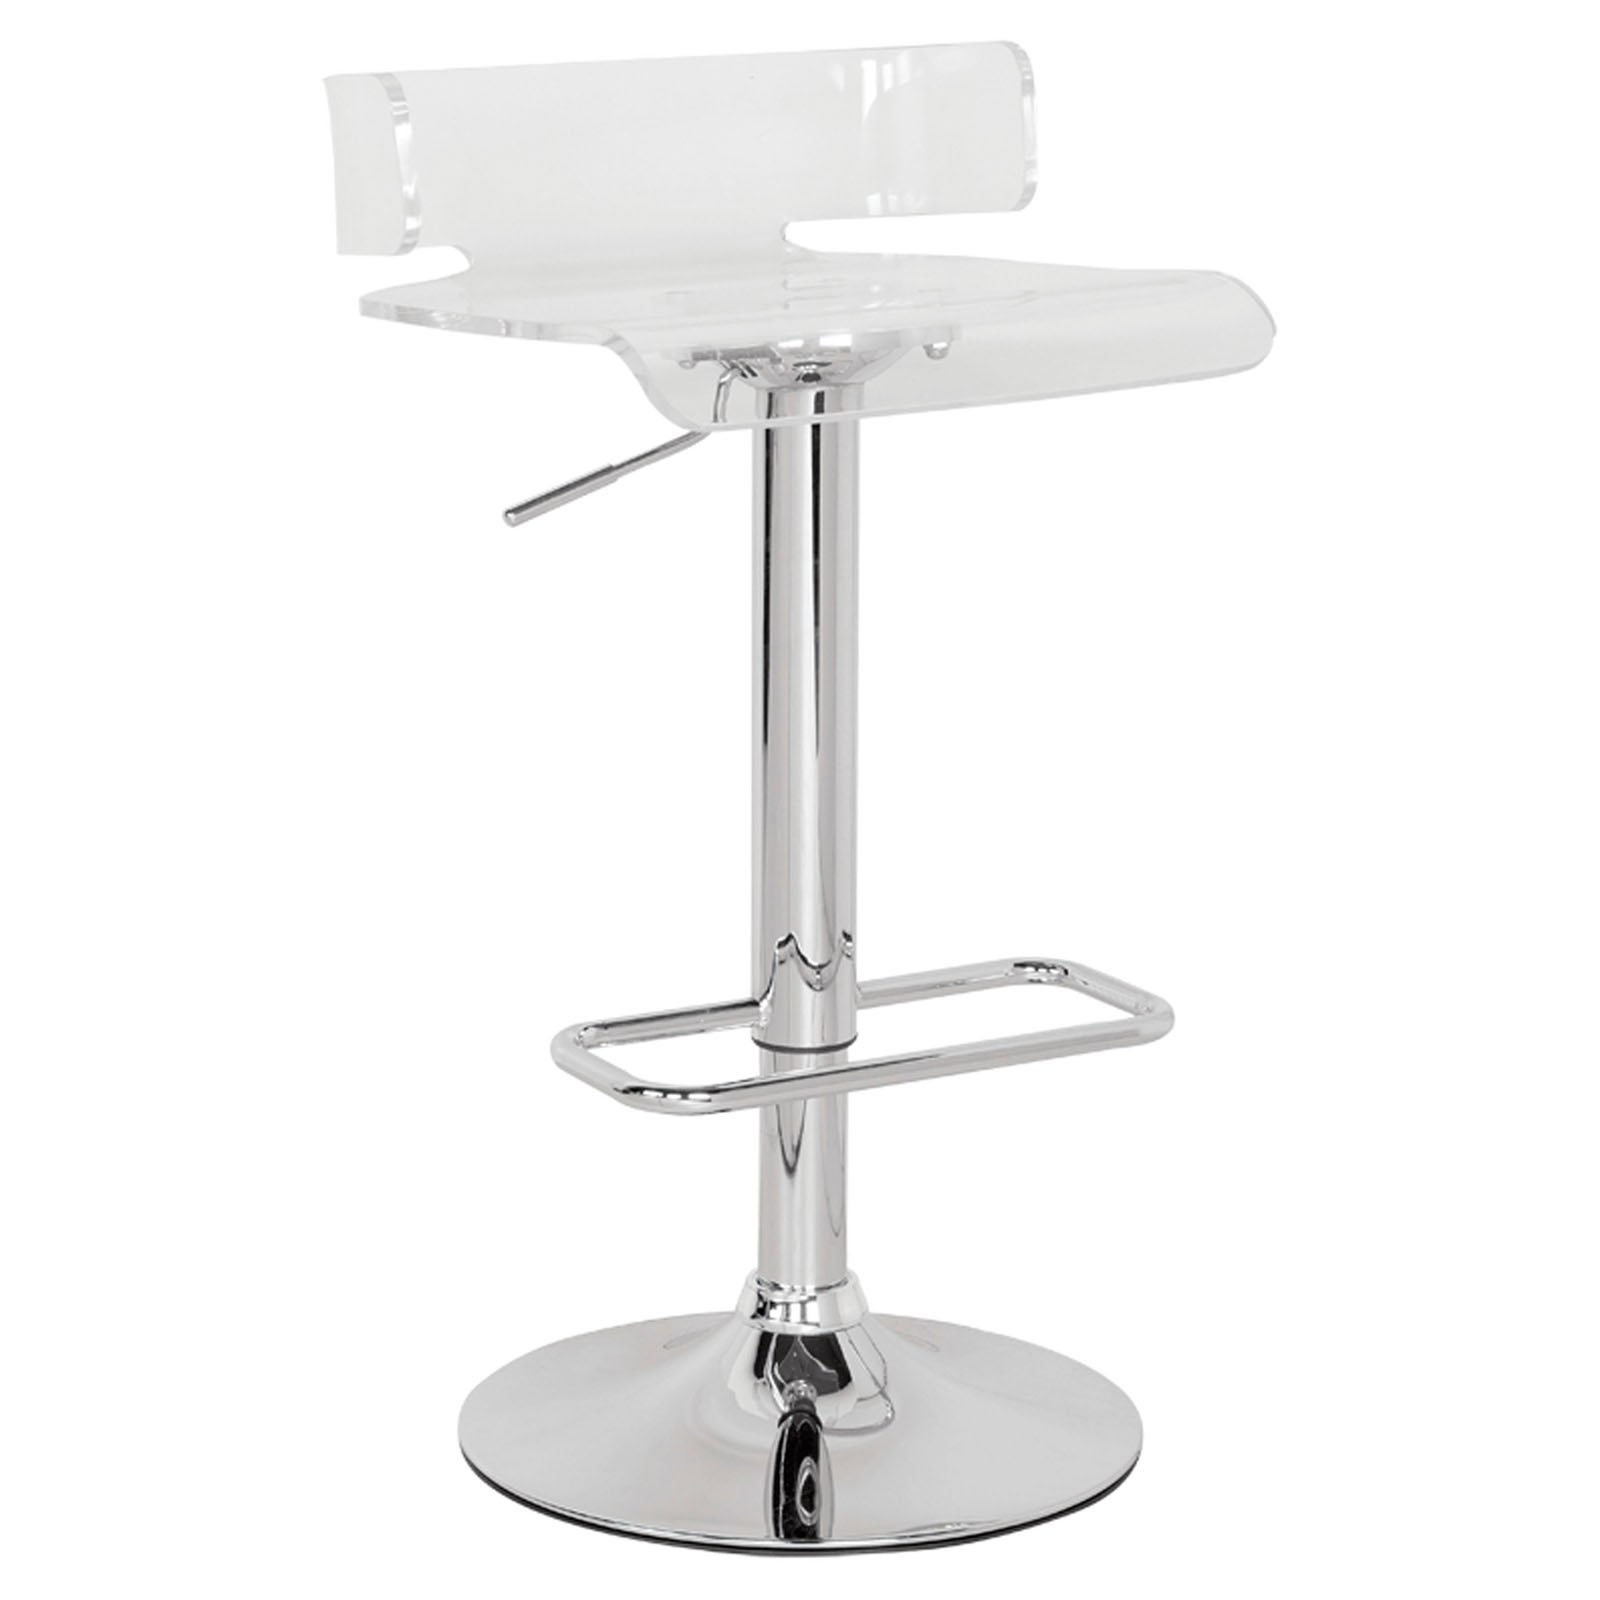 Rania By Acme 96260 Chrome Finish Counter Height Chairs